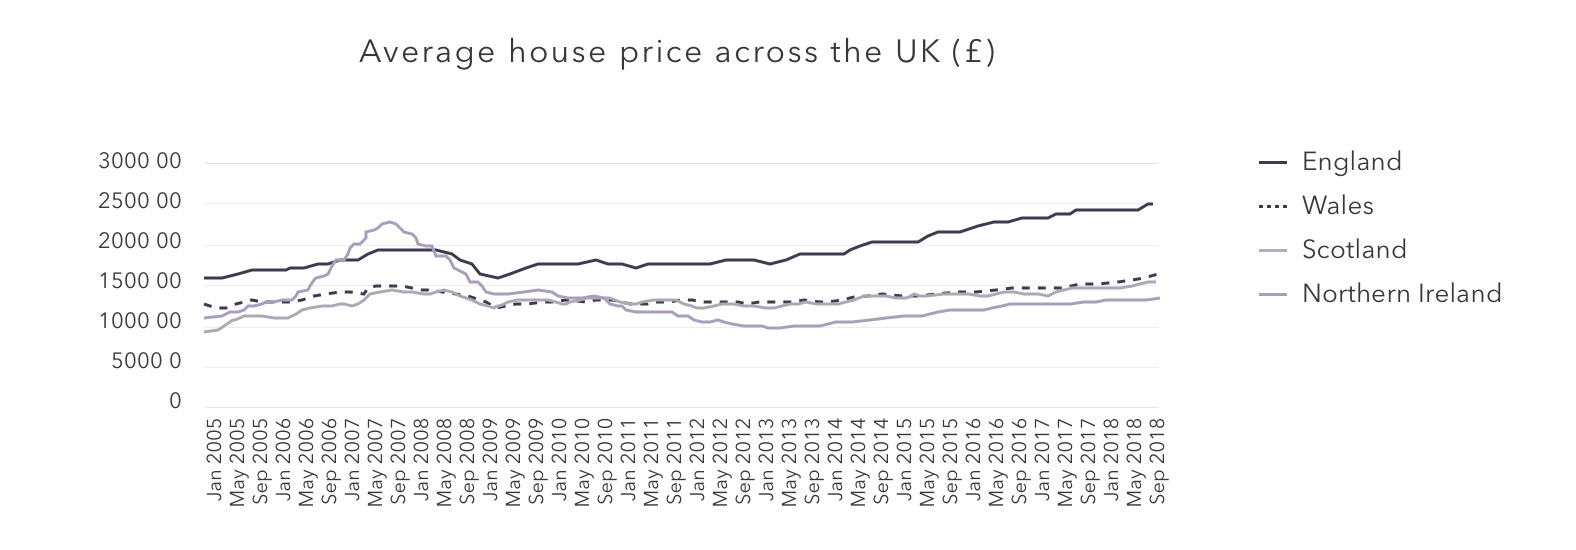 Average UK house prices across the UK